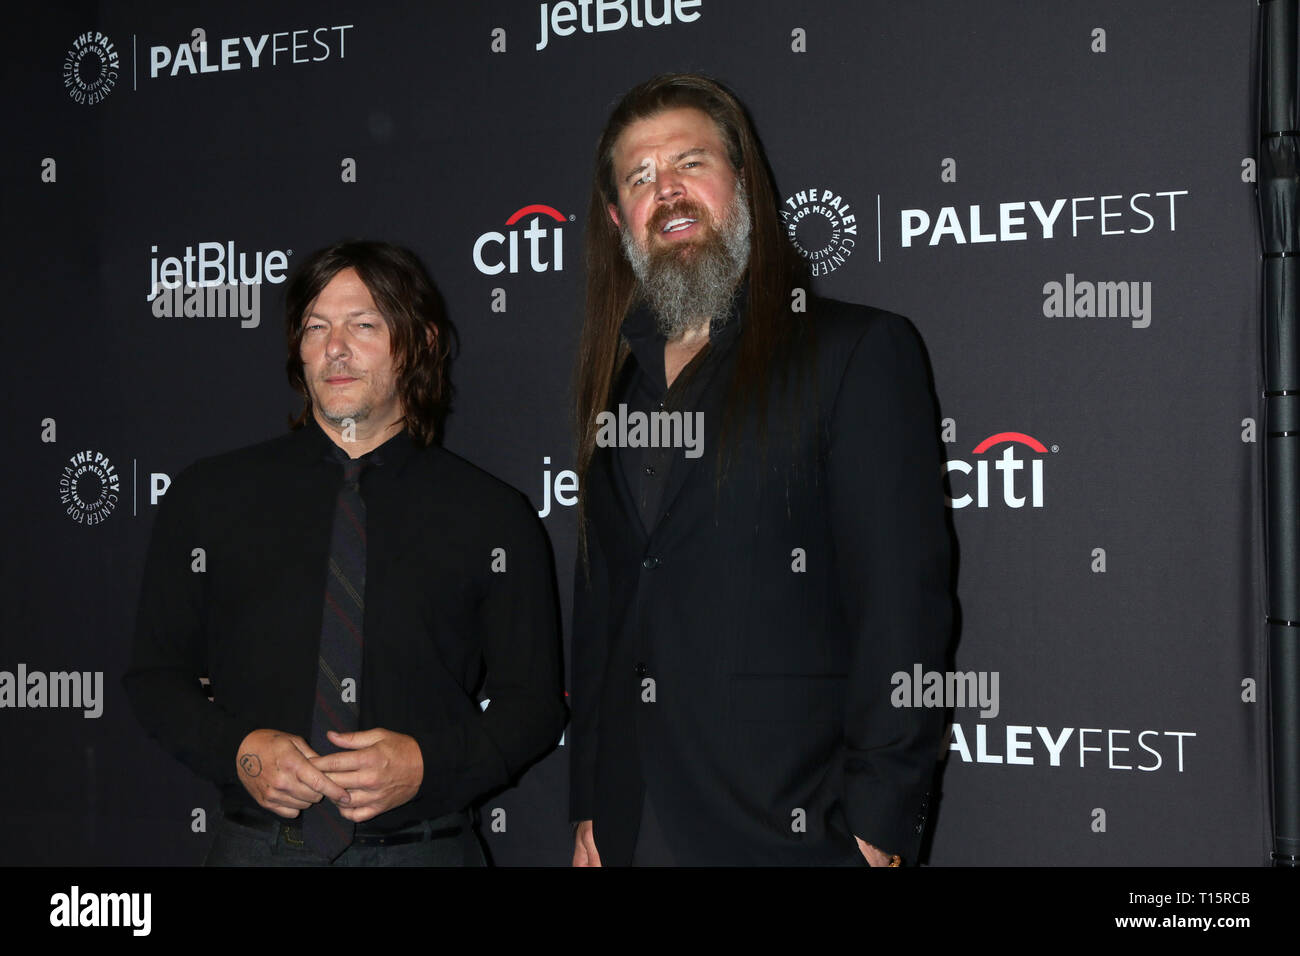 Los Angeles, CA, USA. 22nd Mar, 2019. LOS ANGELES - MAR 22: Norman Reedus, Ryan Hurst at the PaleyFest - ''The Walking Dead'' Event at the Dolby Theater on March 22, 2019 in Los Angeles, CA Credit: Kay Blake/ZUMA Wire/Alamy Live News - Stock Image